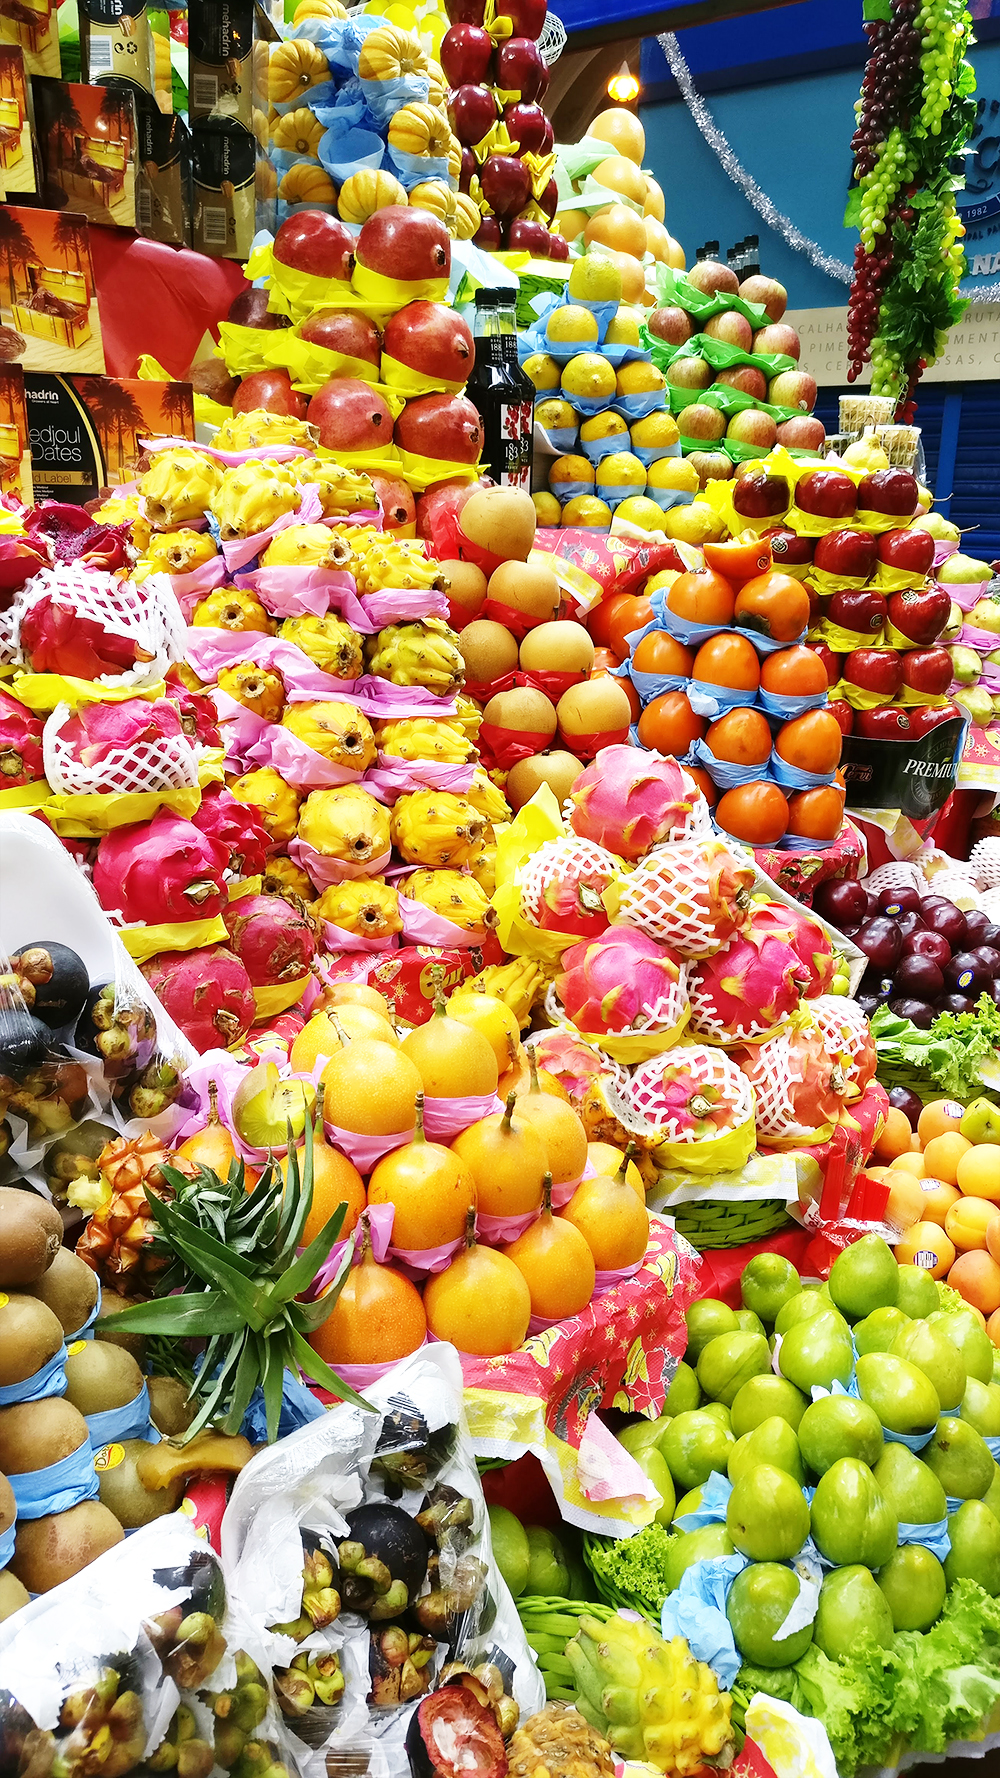 Brazilian fruits for breakfast - What to eat and drink in Brazil? | Aliz's Wonderland